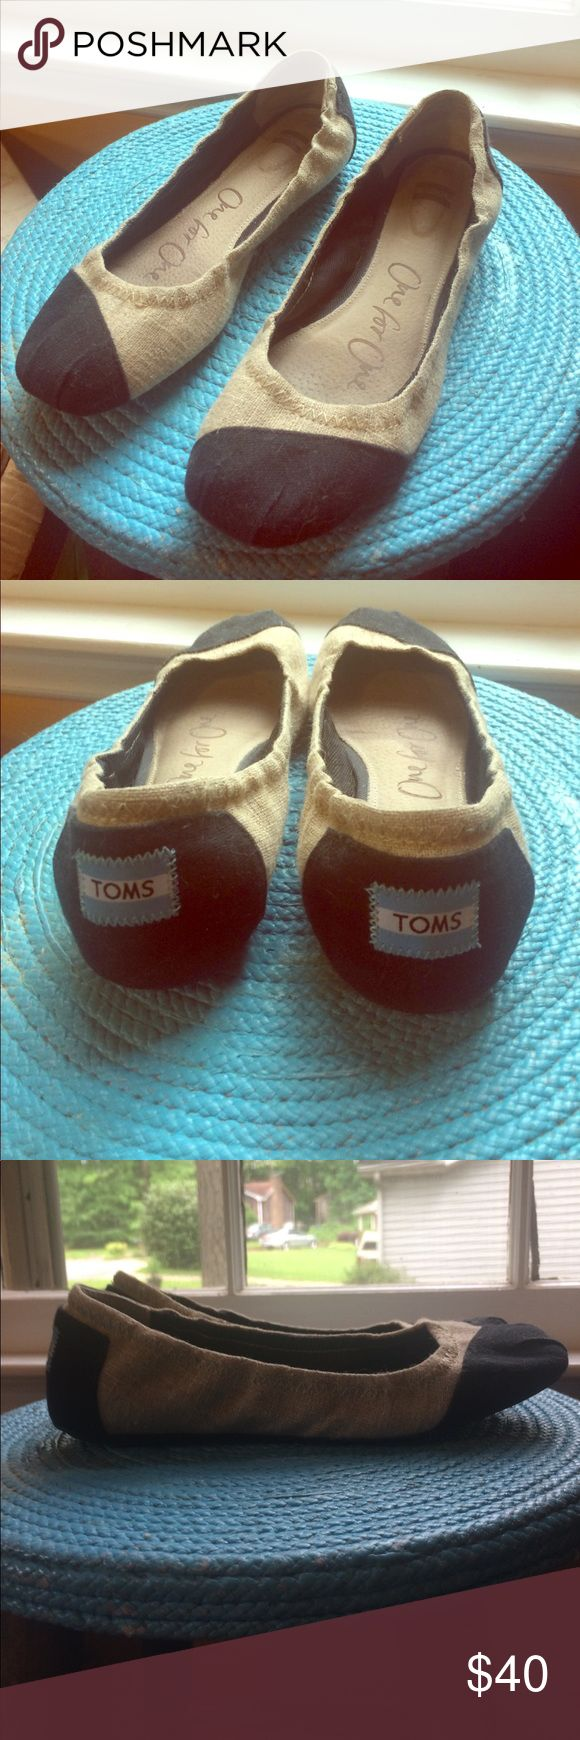 Final price! black/tan TOMS flats Tan TOMS flats with black heel and toe. Padded insoles—very comfortable! Make an offer! TOMS Shoes Flats & Loafers